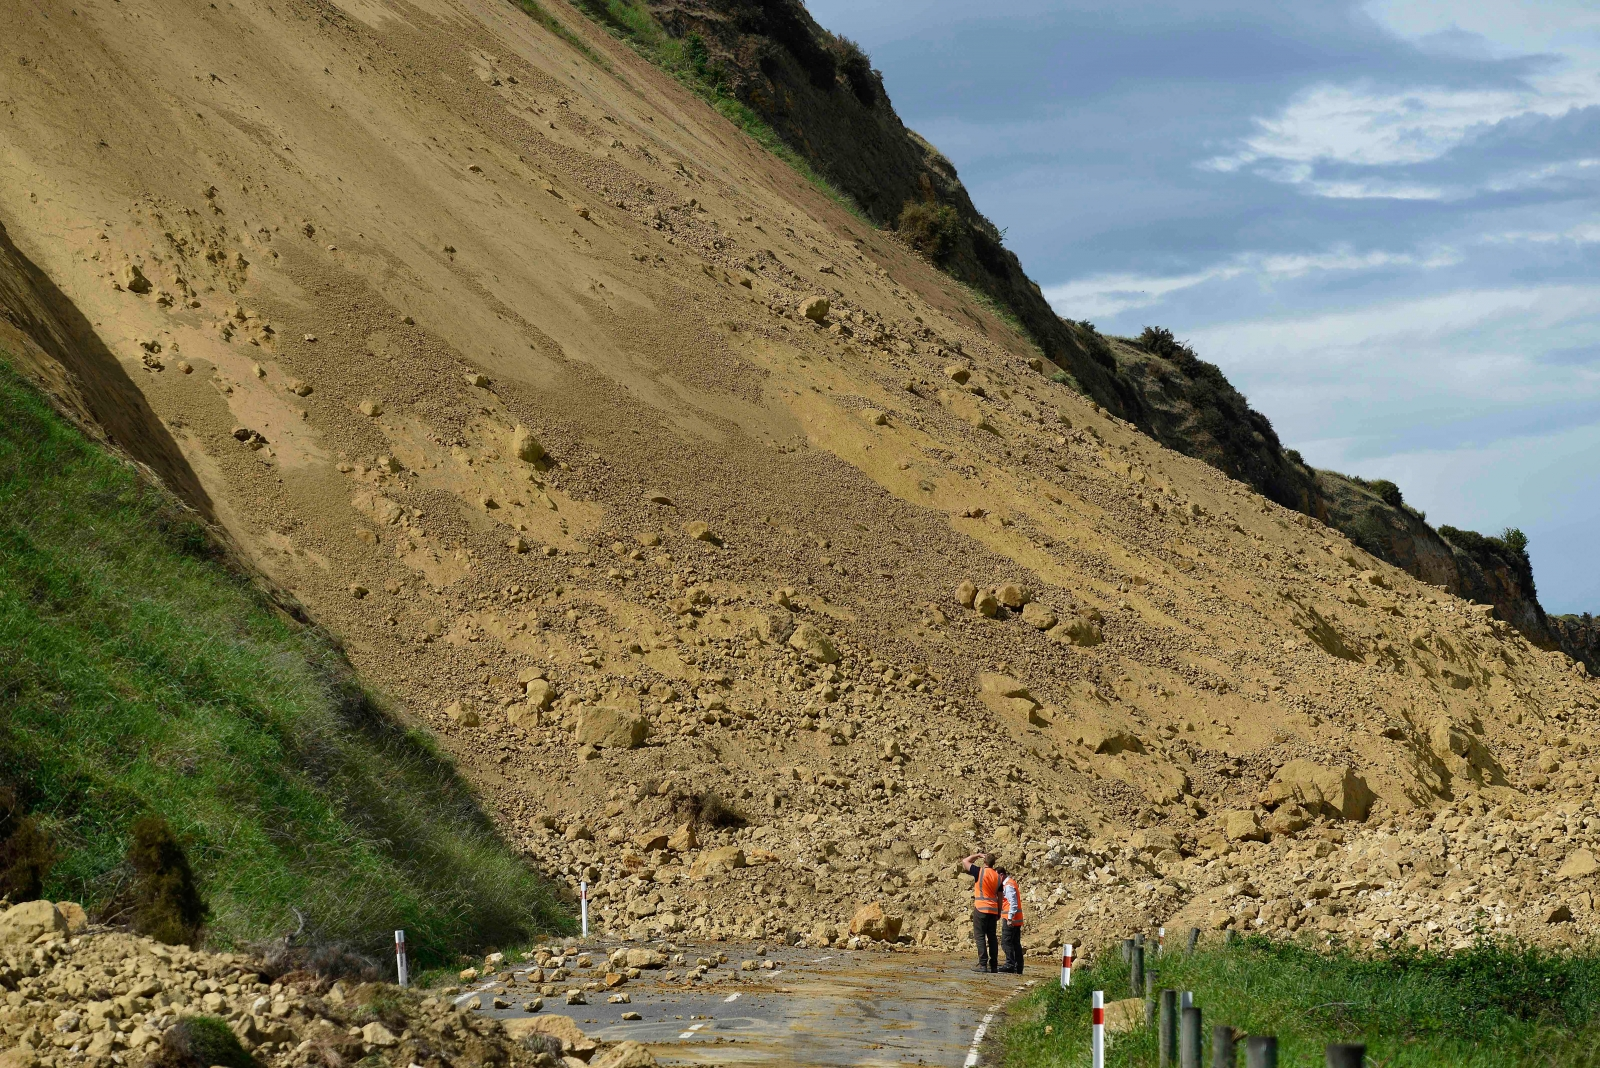 New Zealand: Large megathrust earthquakes happen due to ...